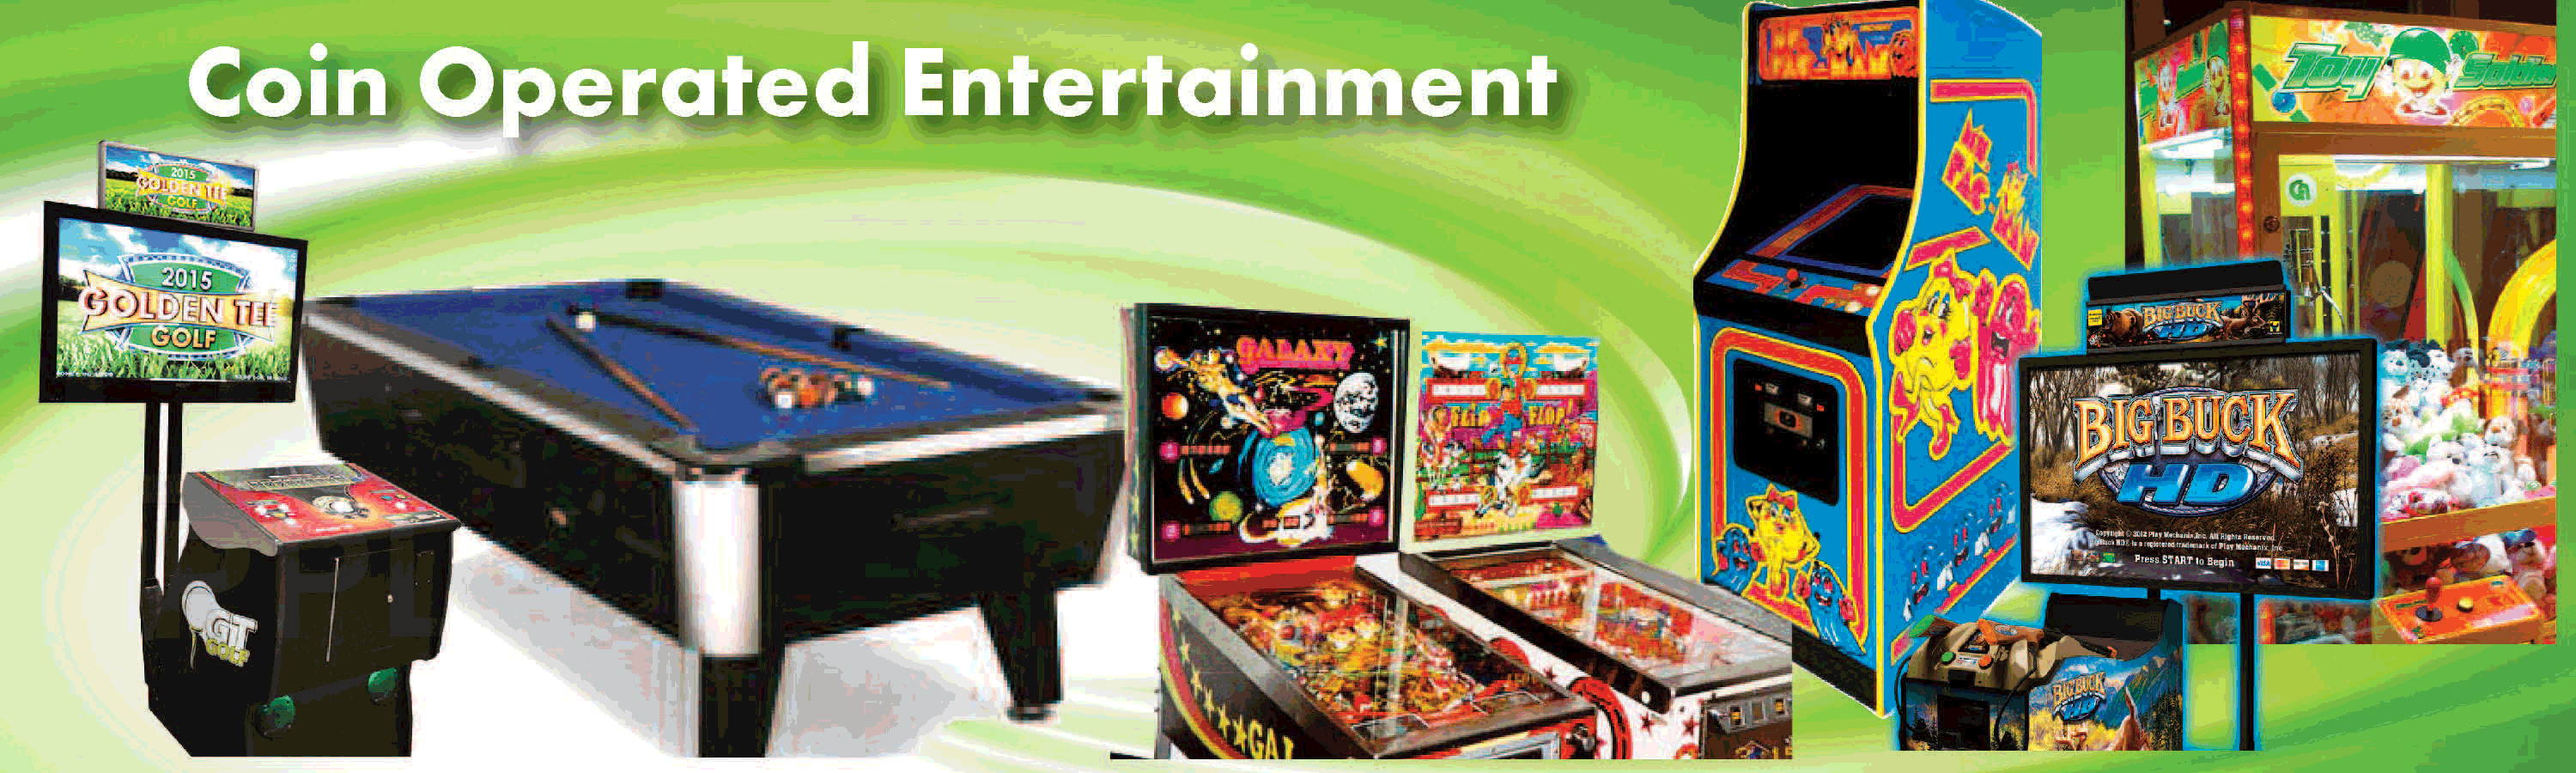 coin-operated-entertainment